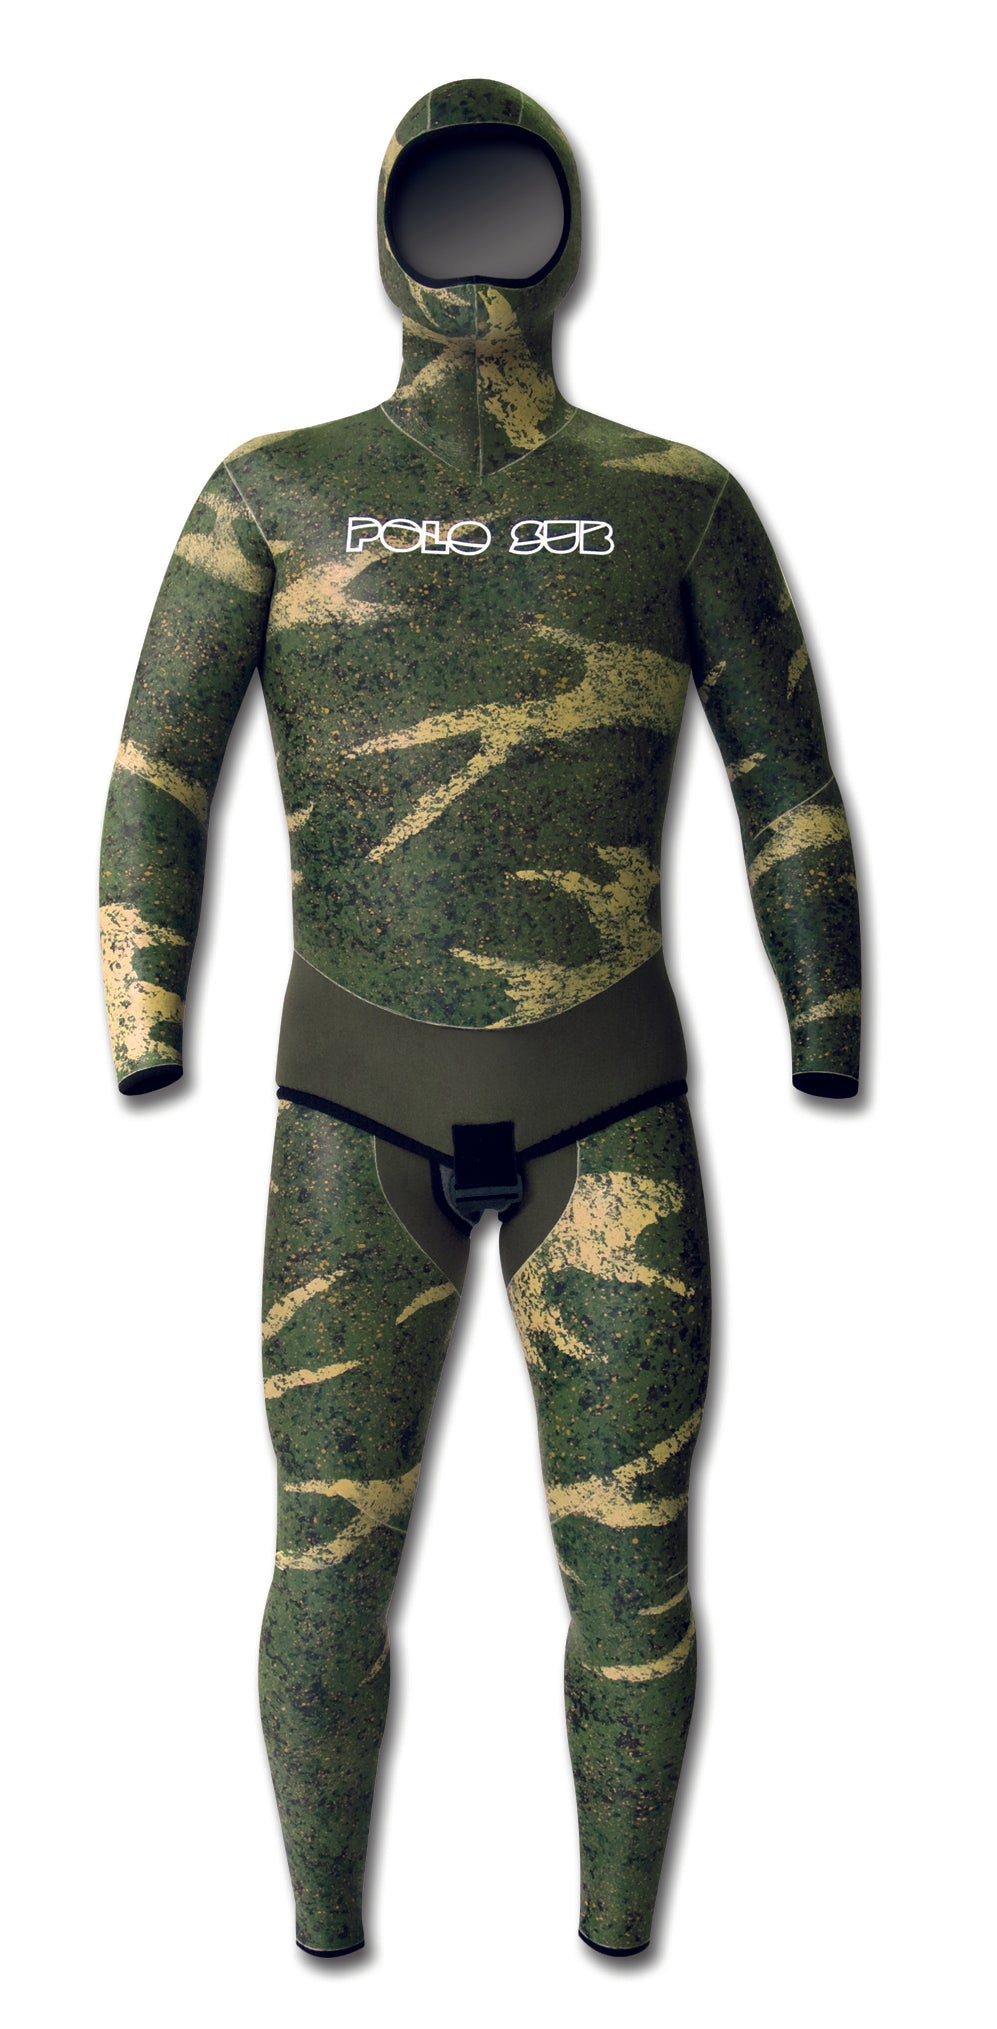 Гидрокостюм Polosub Smoothskin Camo Decomposed зеленый